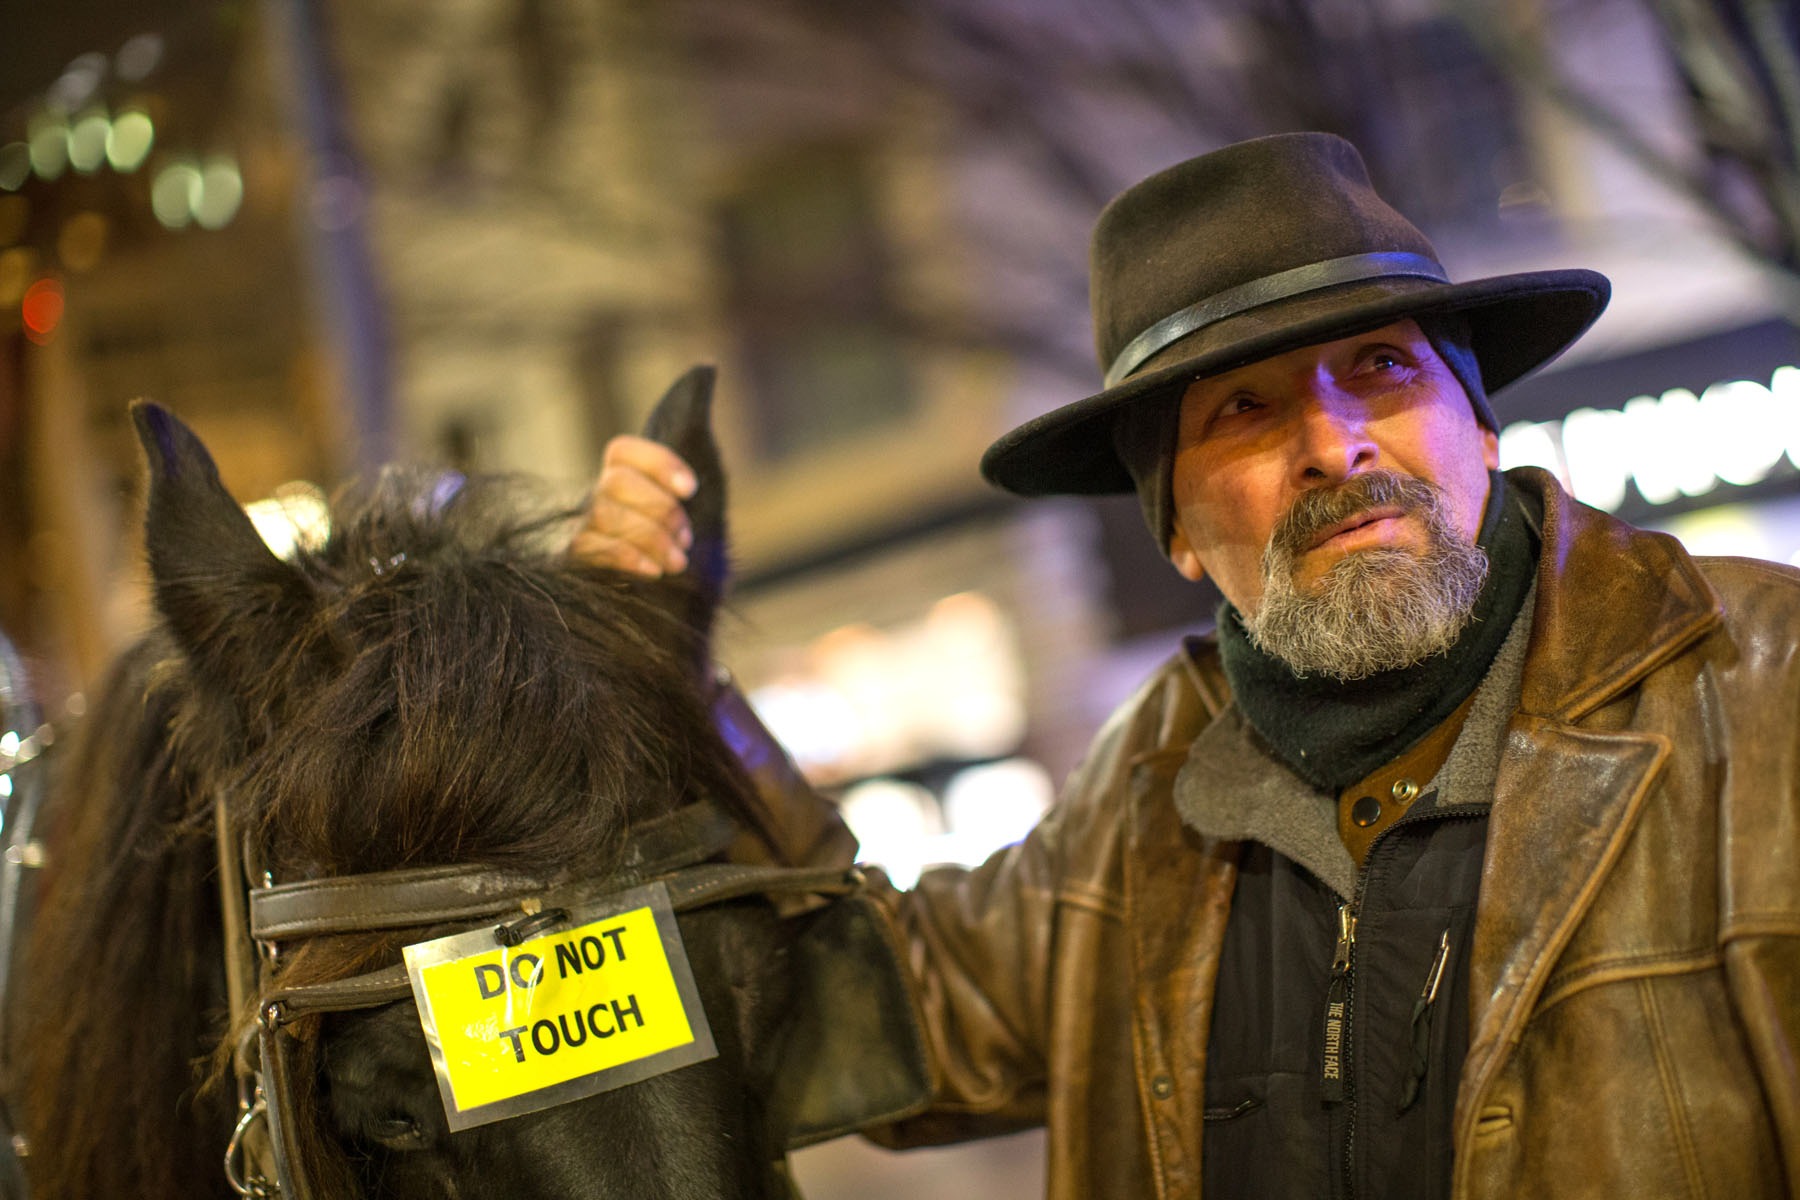 Steve Beckmann, owner and driver of Sealth Horse Carriages, rubs his draft horse, Amos', ears to calm him down during a break between taking passengers for rides in downtown Seattle, WA on December 17, 2017. (© Karen Ducey)